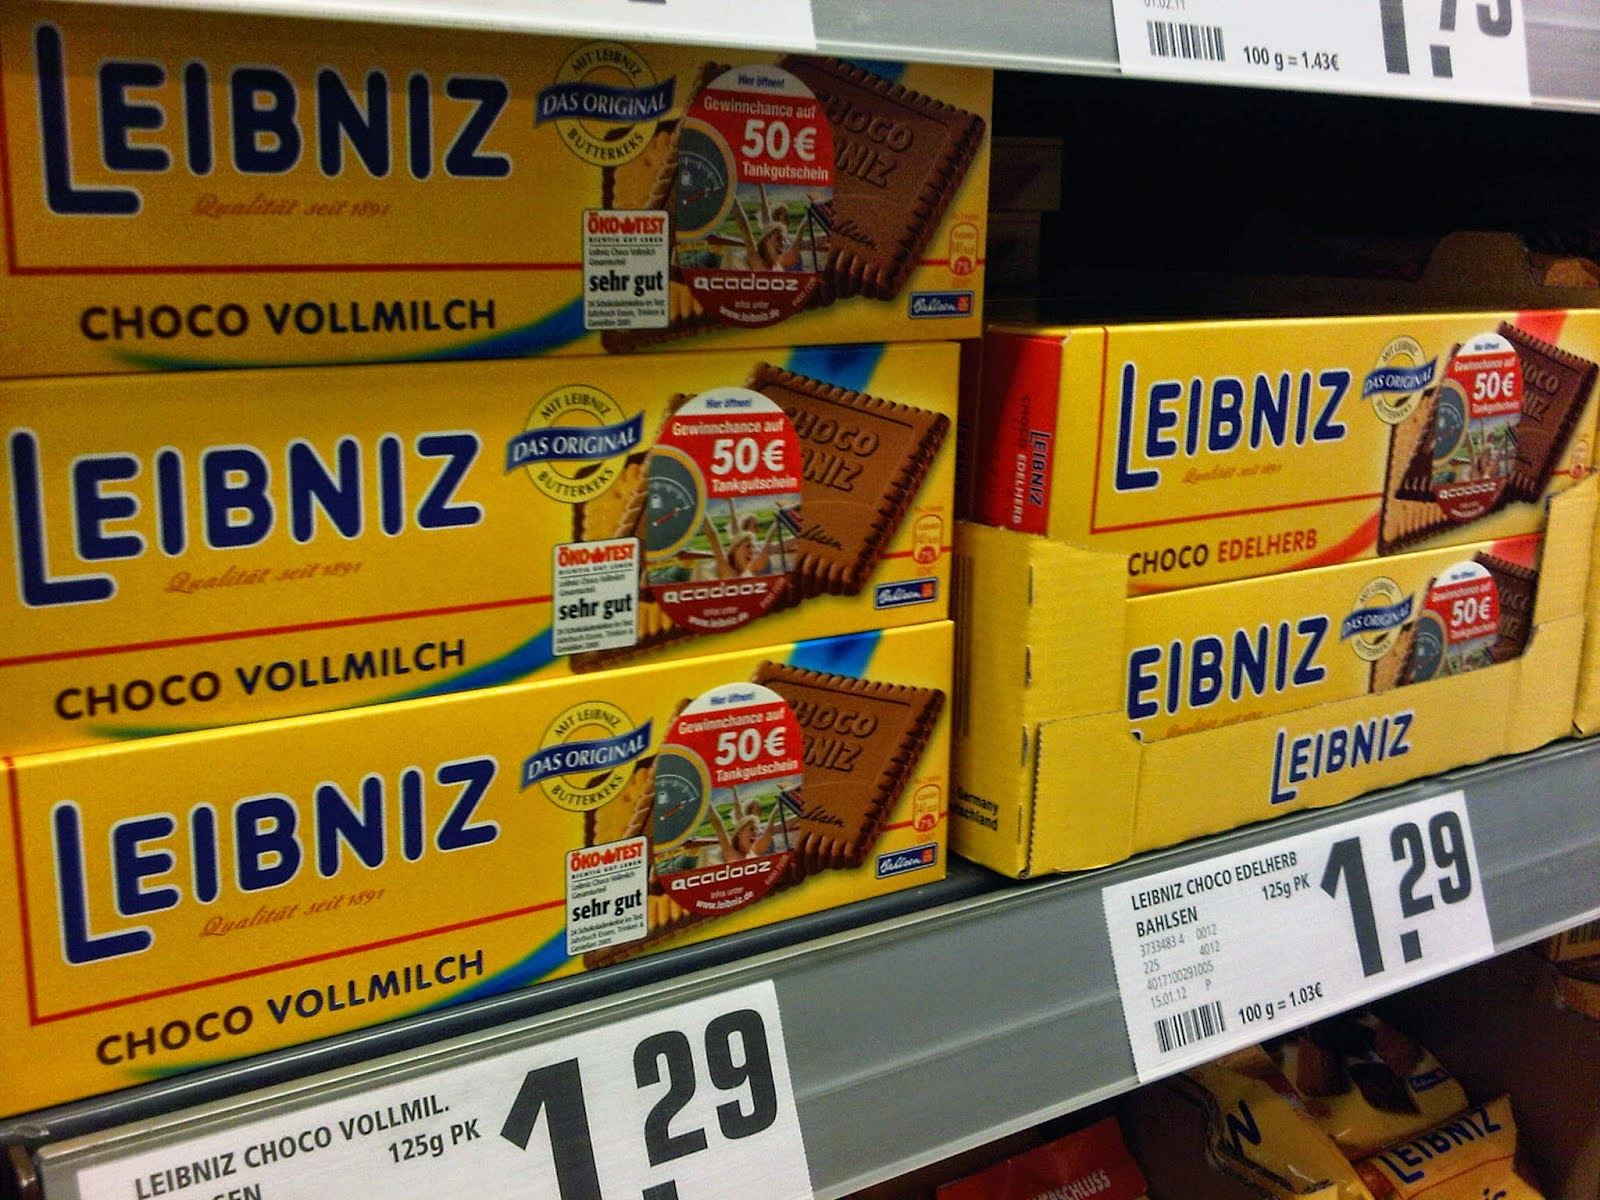 knoppers riegel rewe